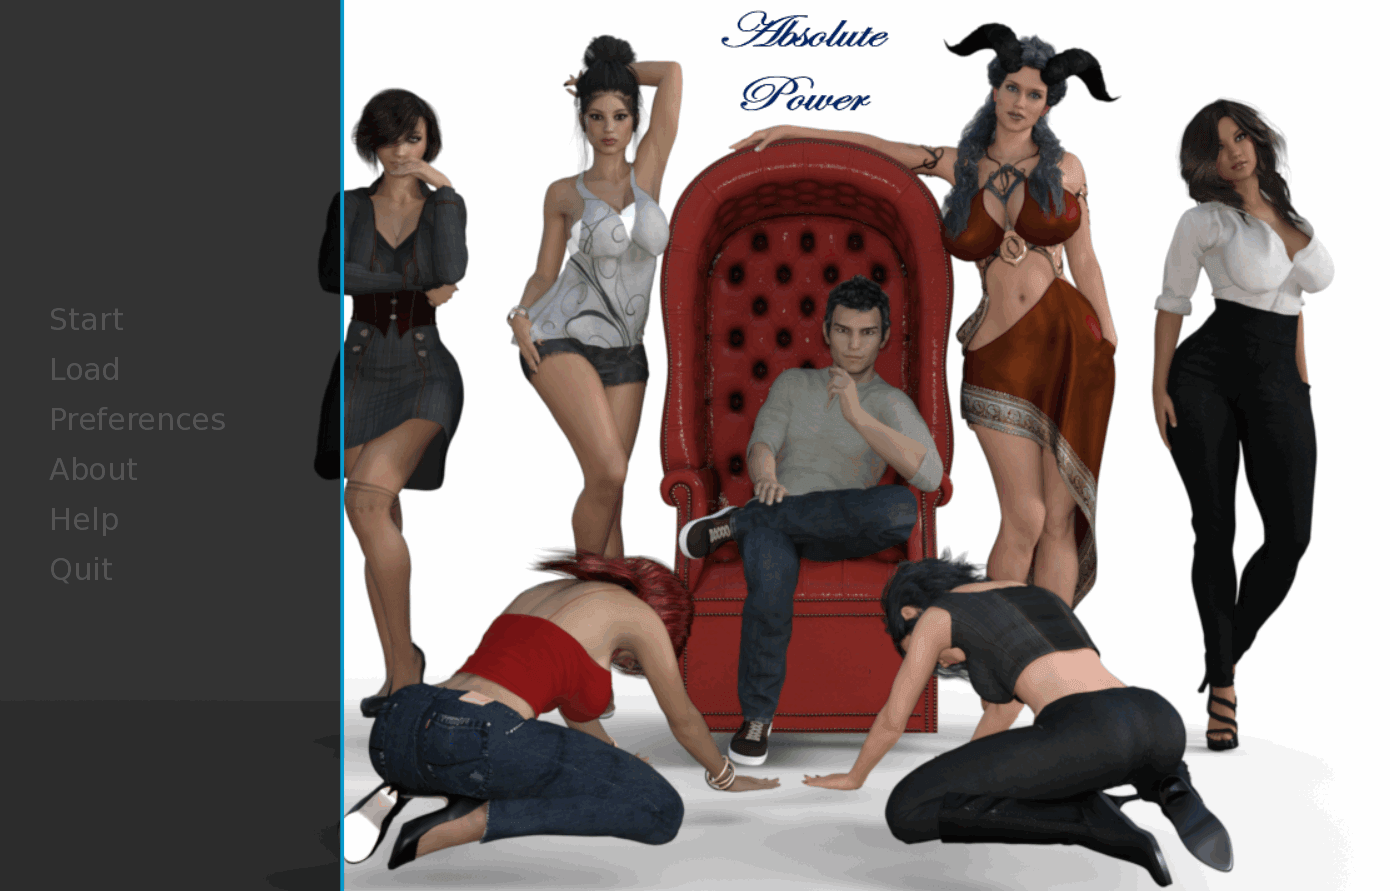 Absolute Power – Version 0.7 + CG Vers 0.8 – Update - Free family erotic game 3